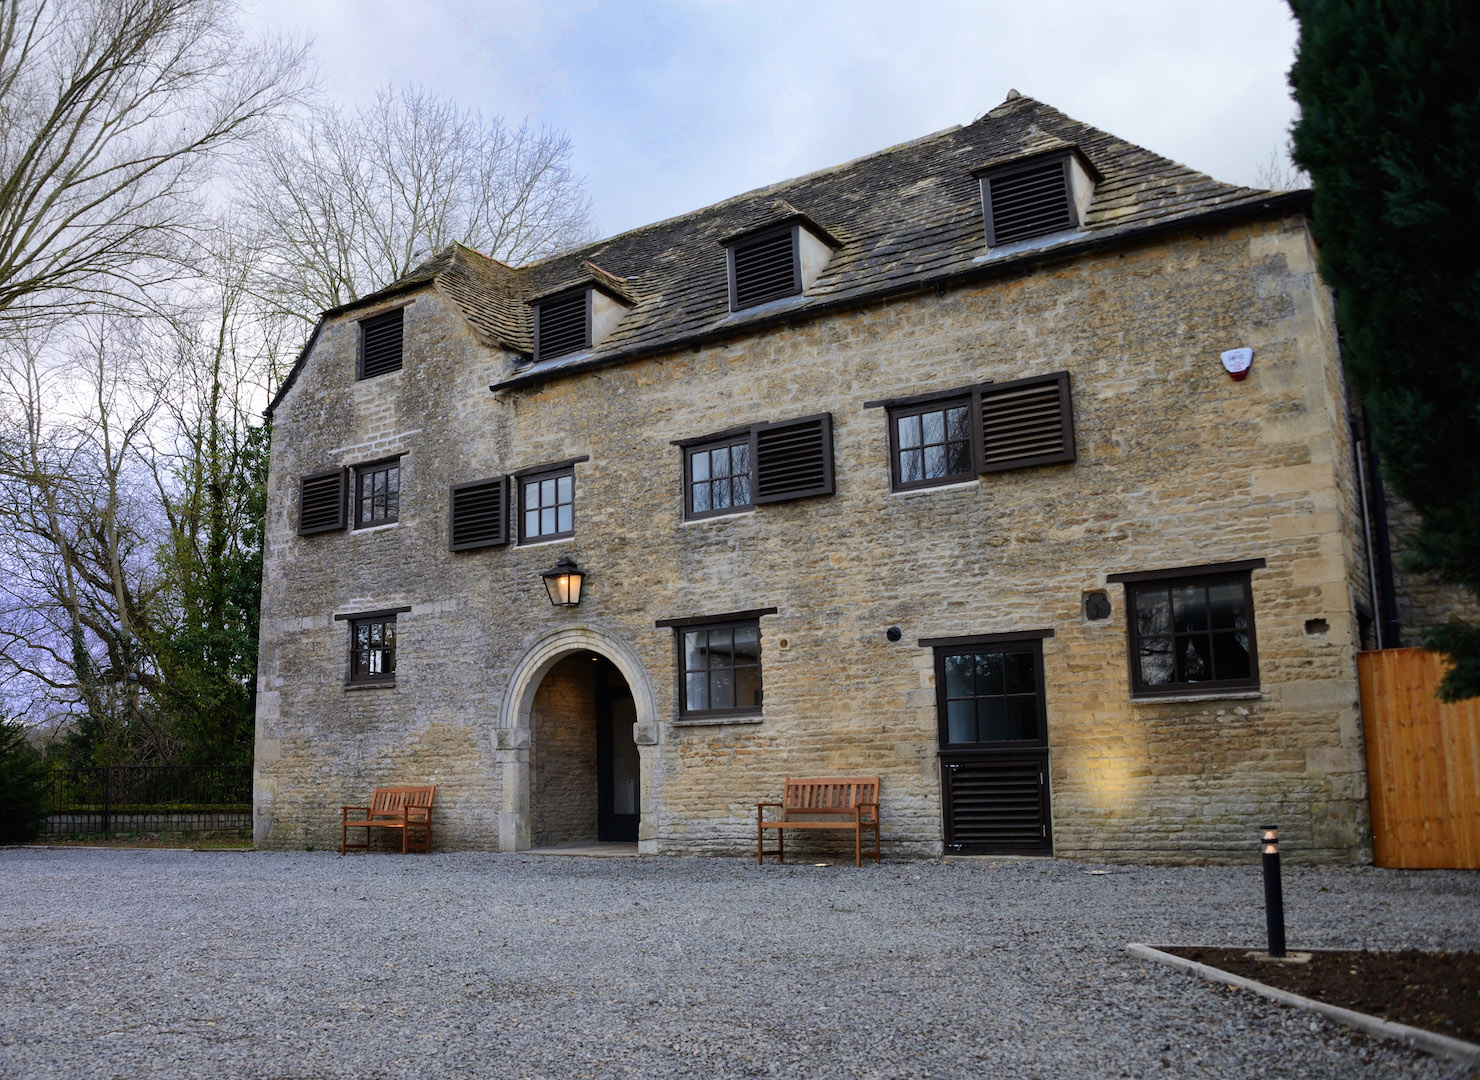 King's Mill, St Peter's Vale, Stamford. PE9 2QT